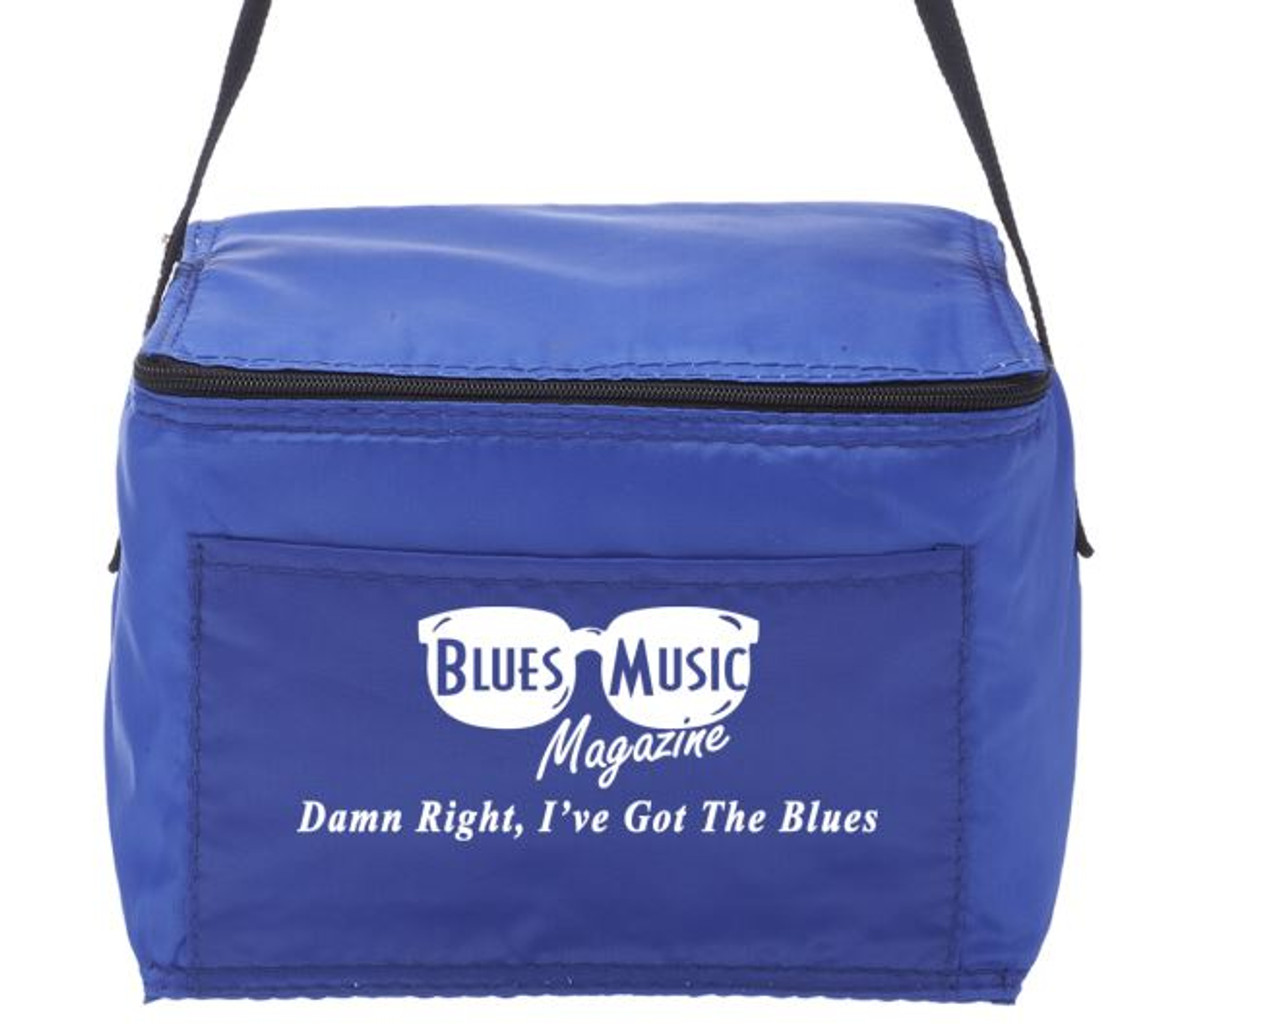 BLUES MUSIC MAGAZINE 6 Pack Cooler Lunch Bags